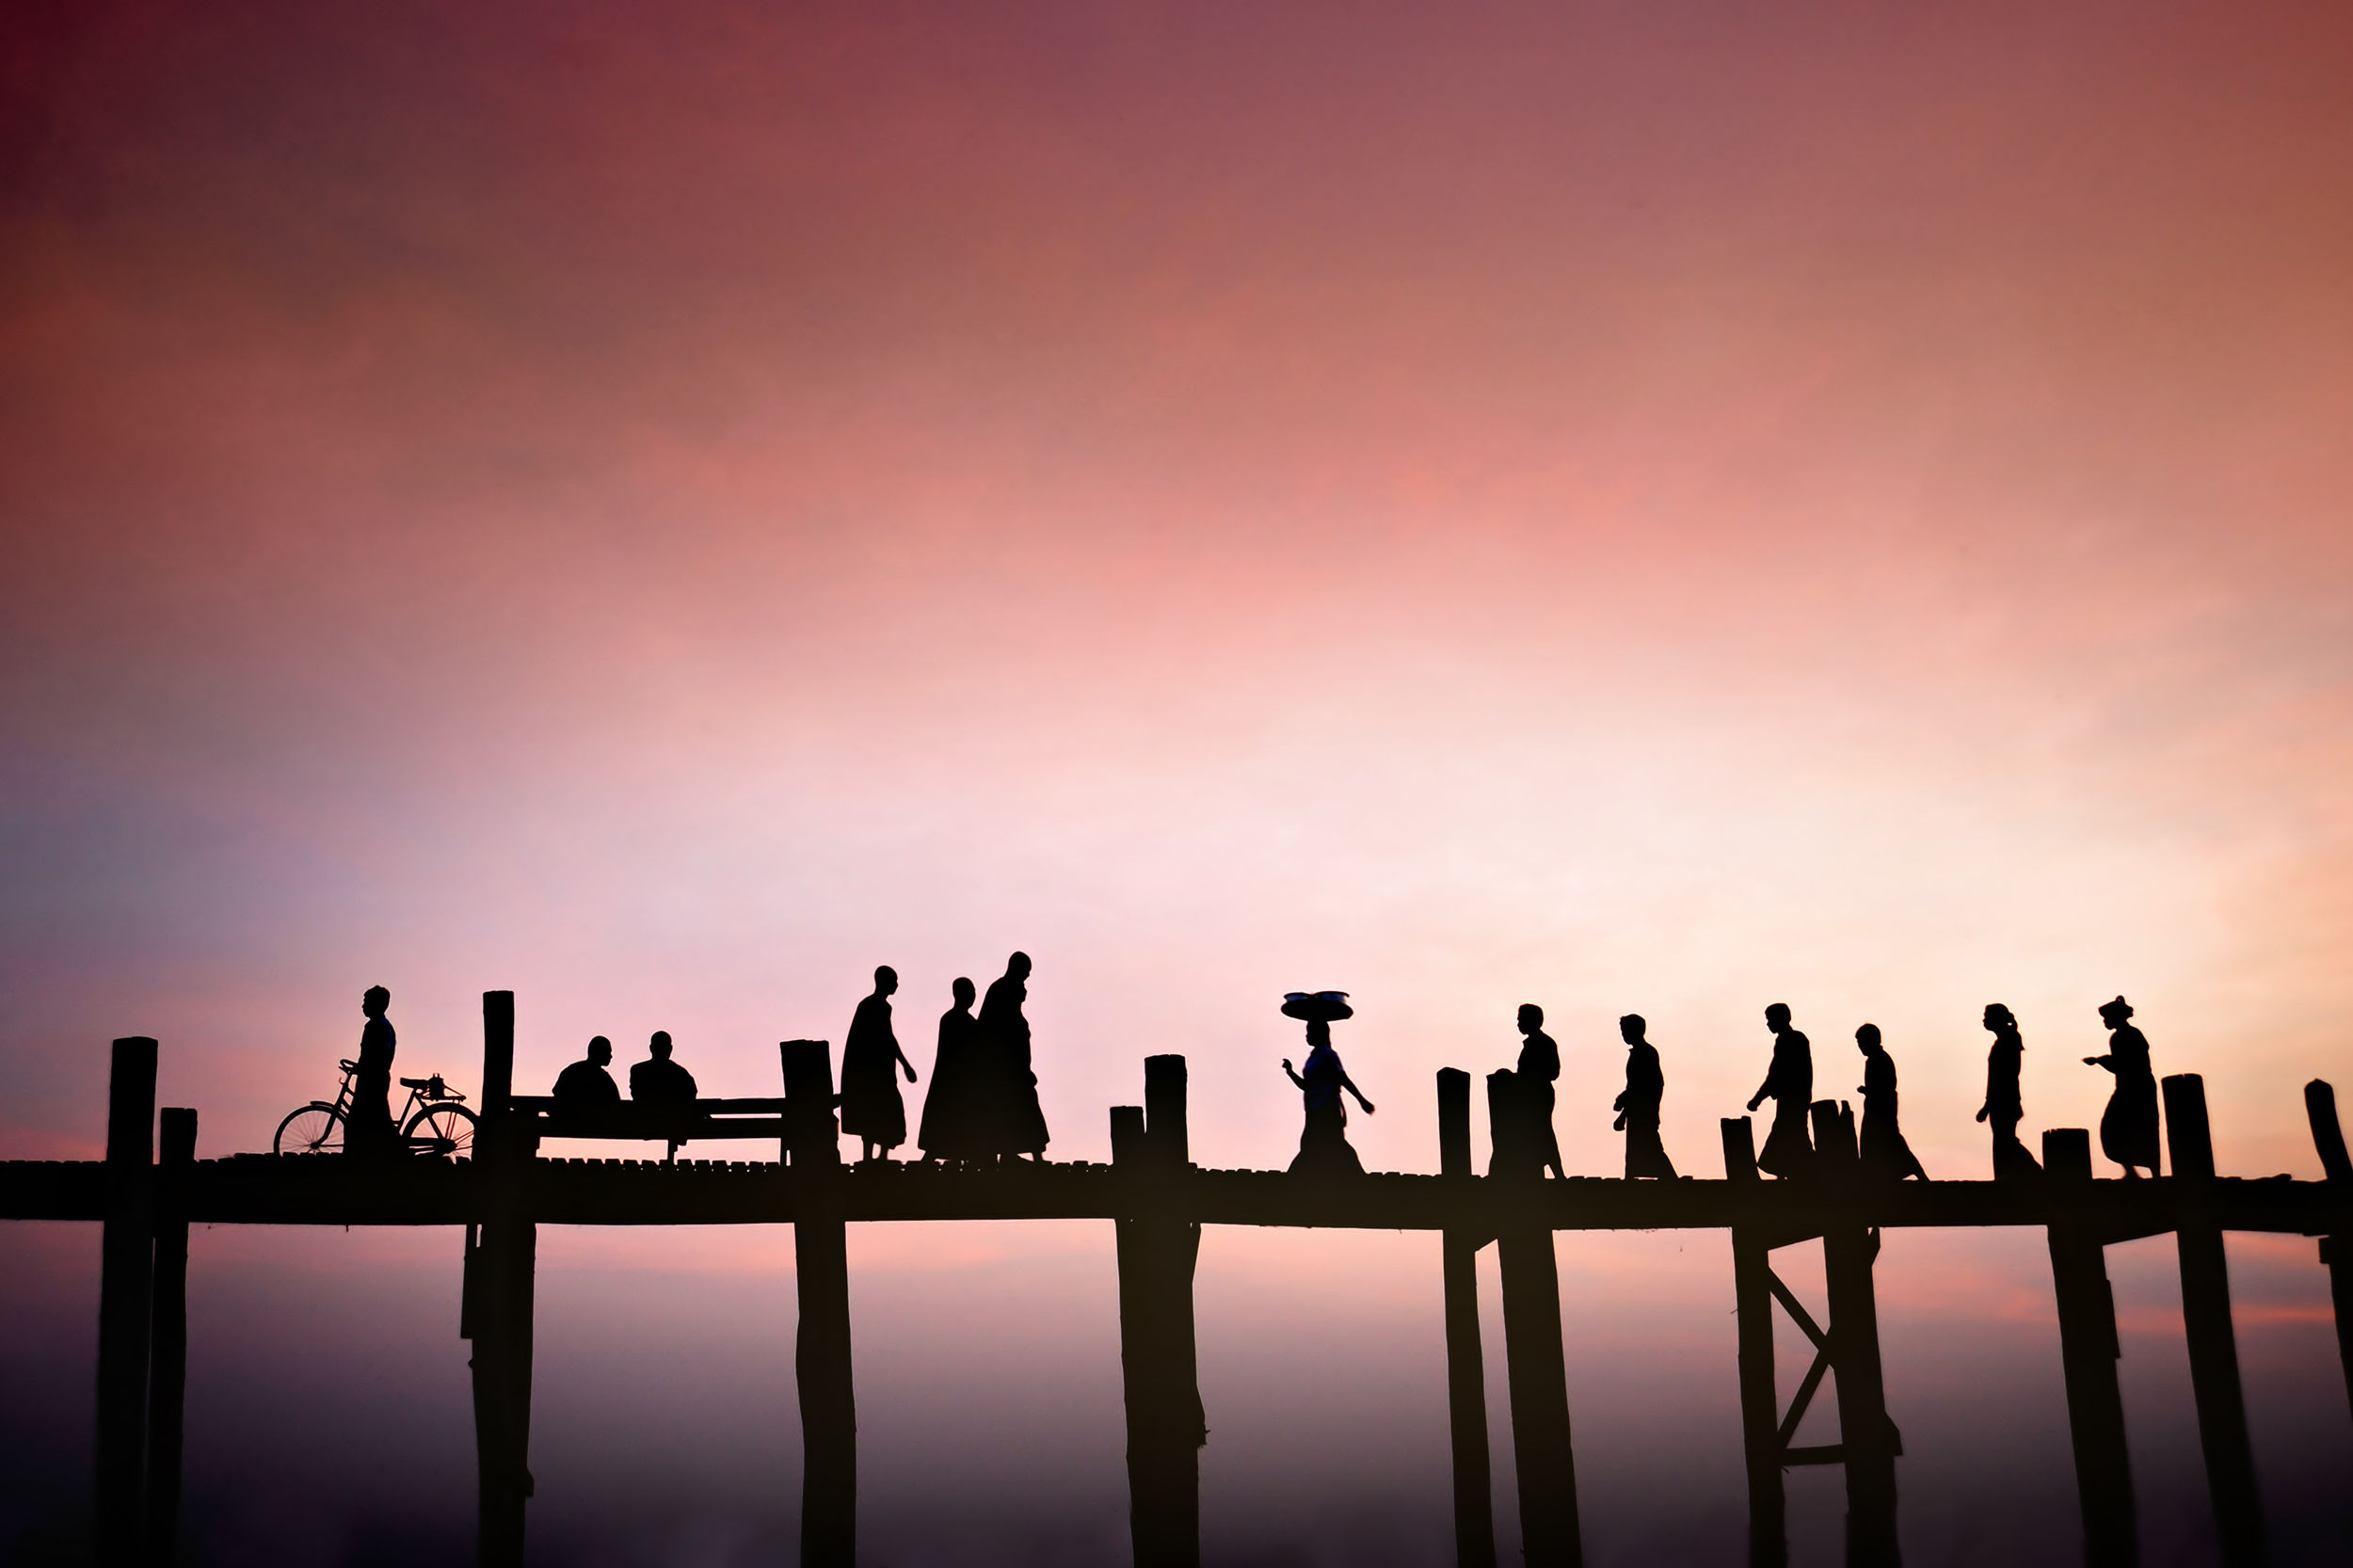 Beautiful Expressions of evening photography